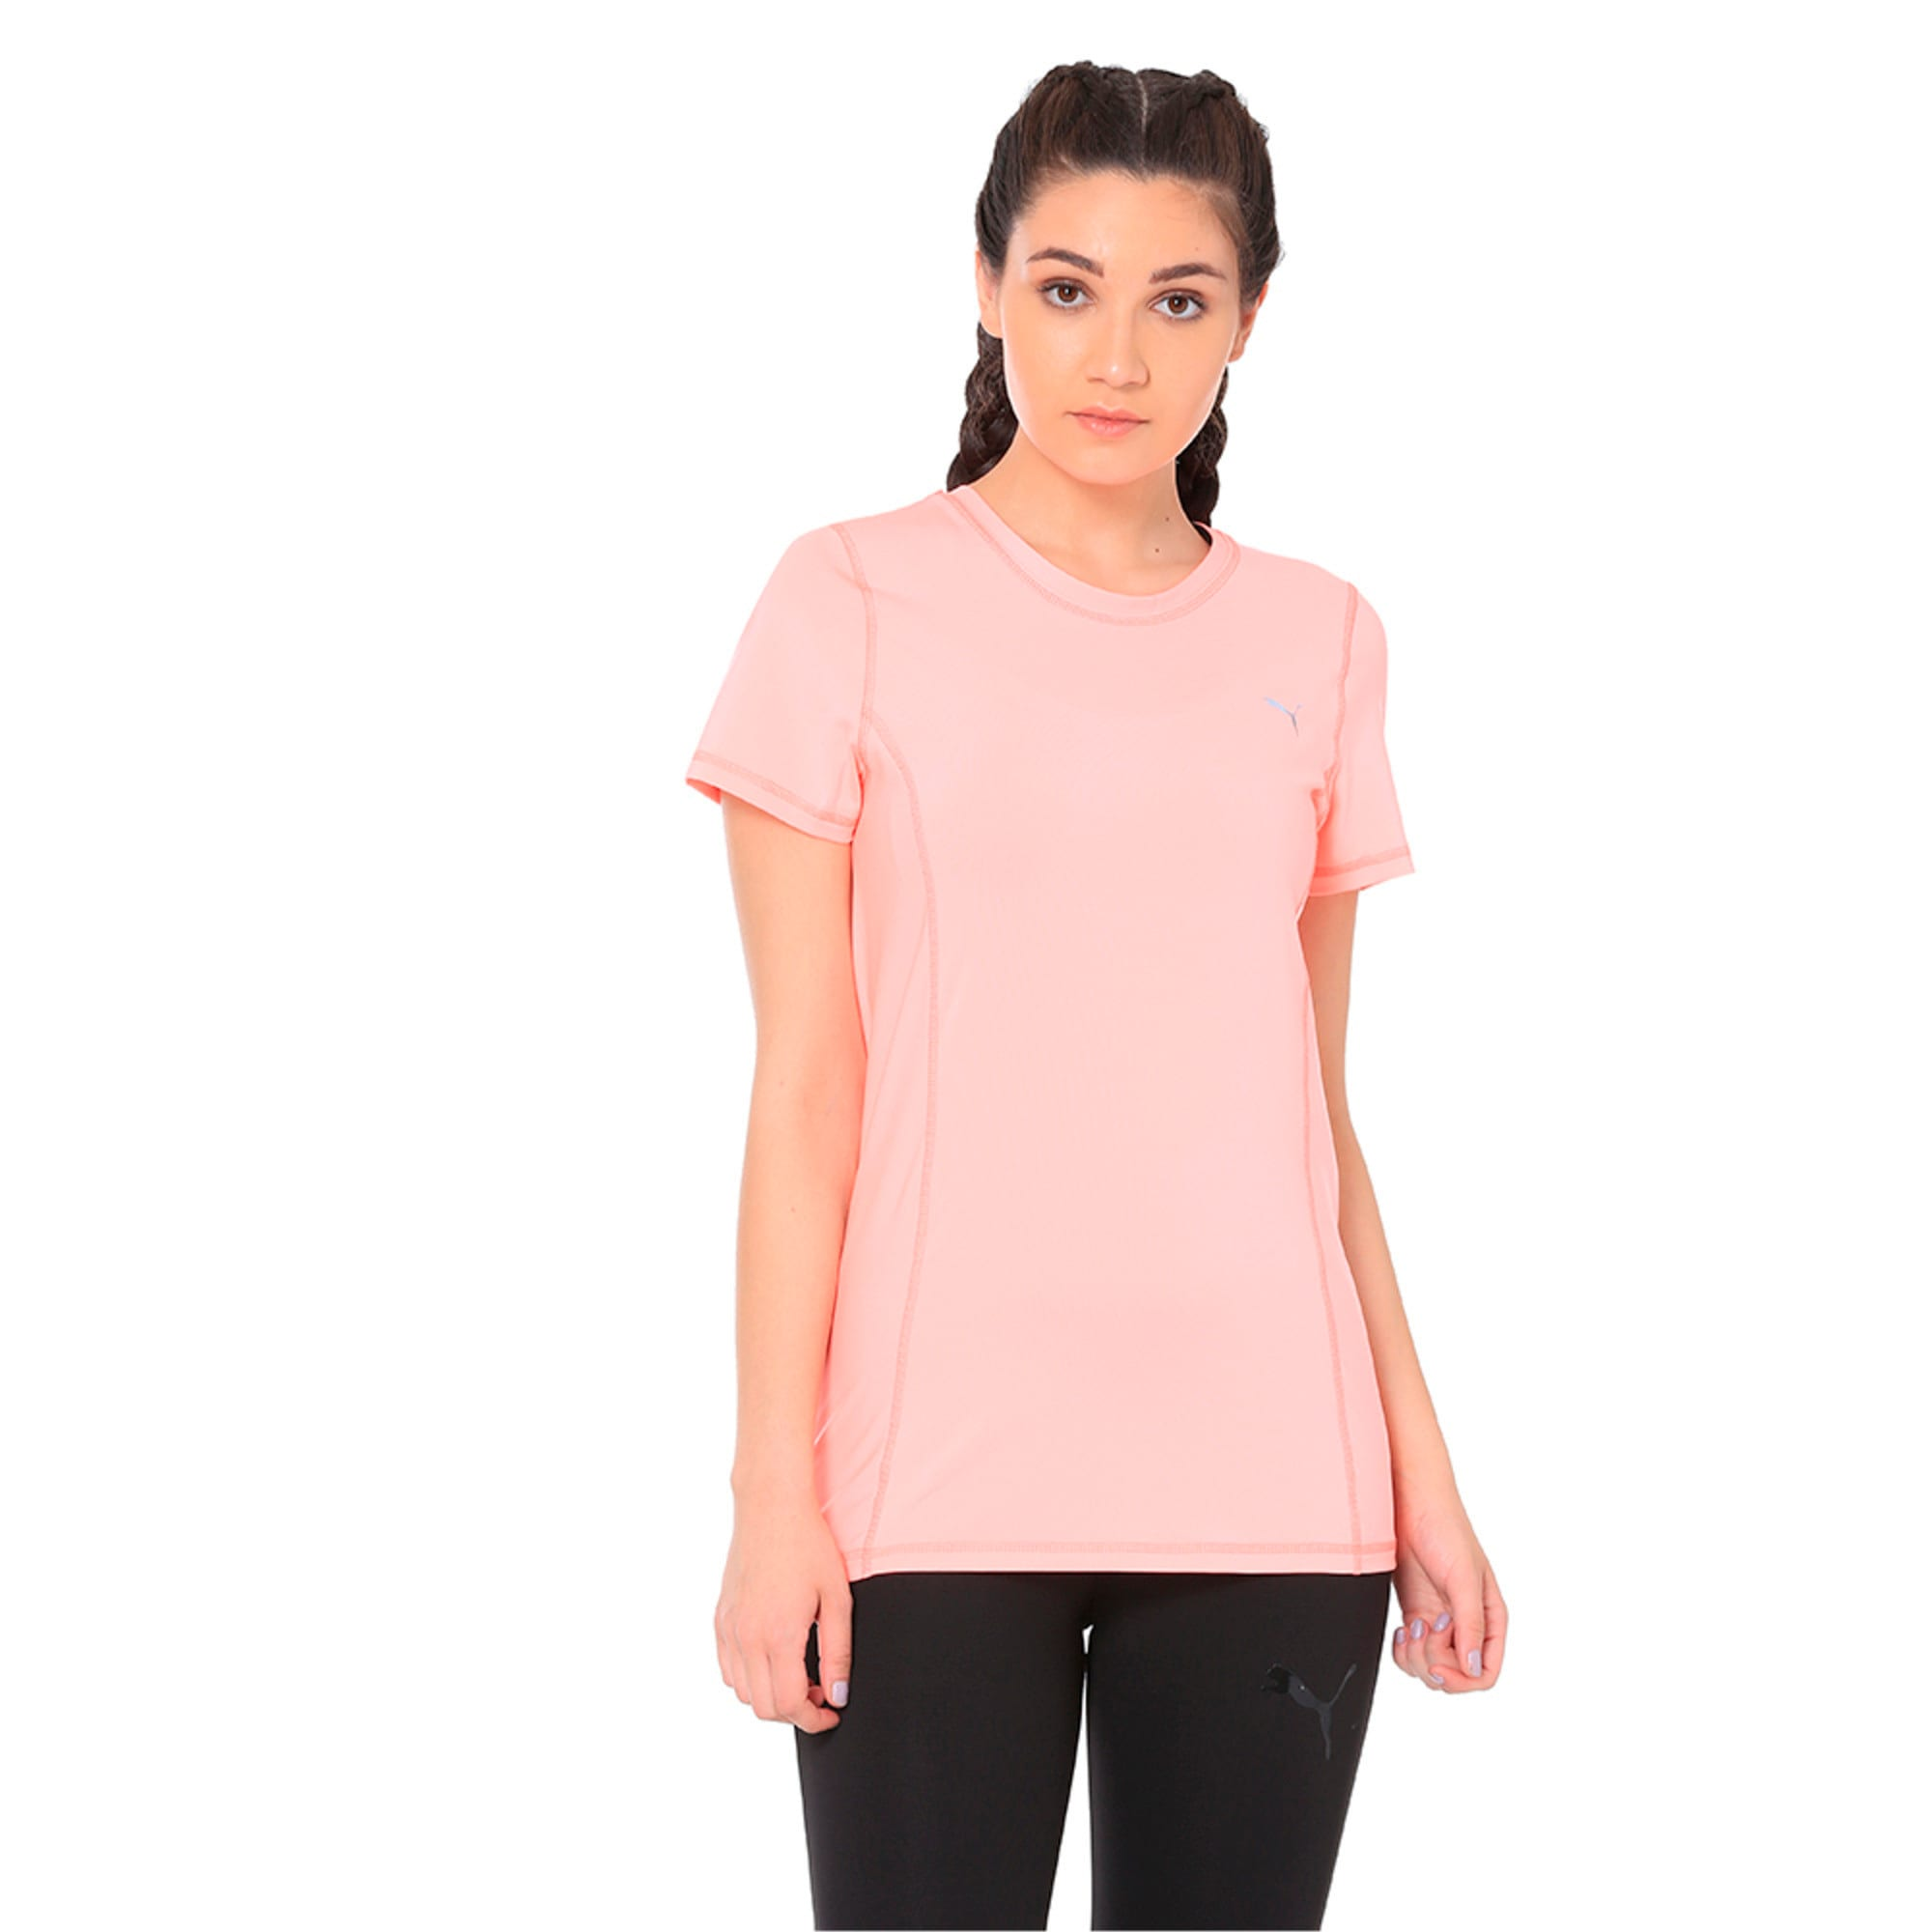 Thumbnail 4 of Essential Tee, Soft Fluo Peach, medium-IND